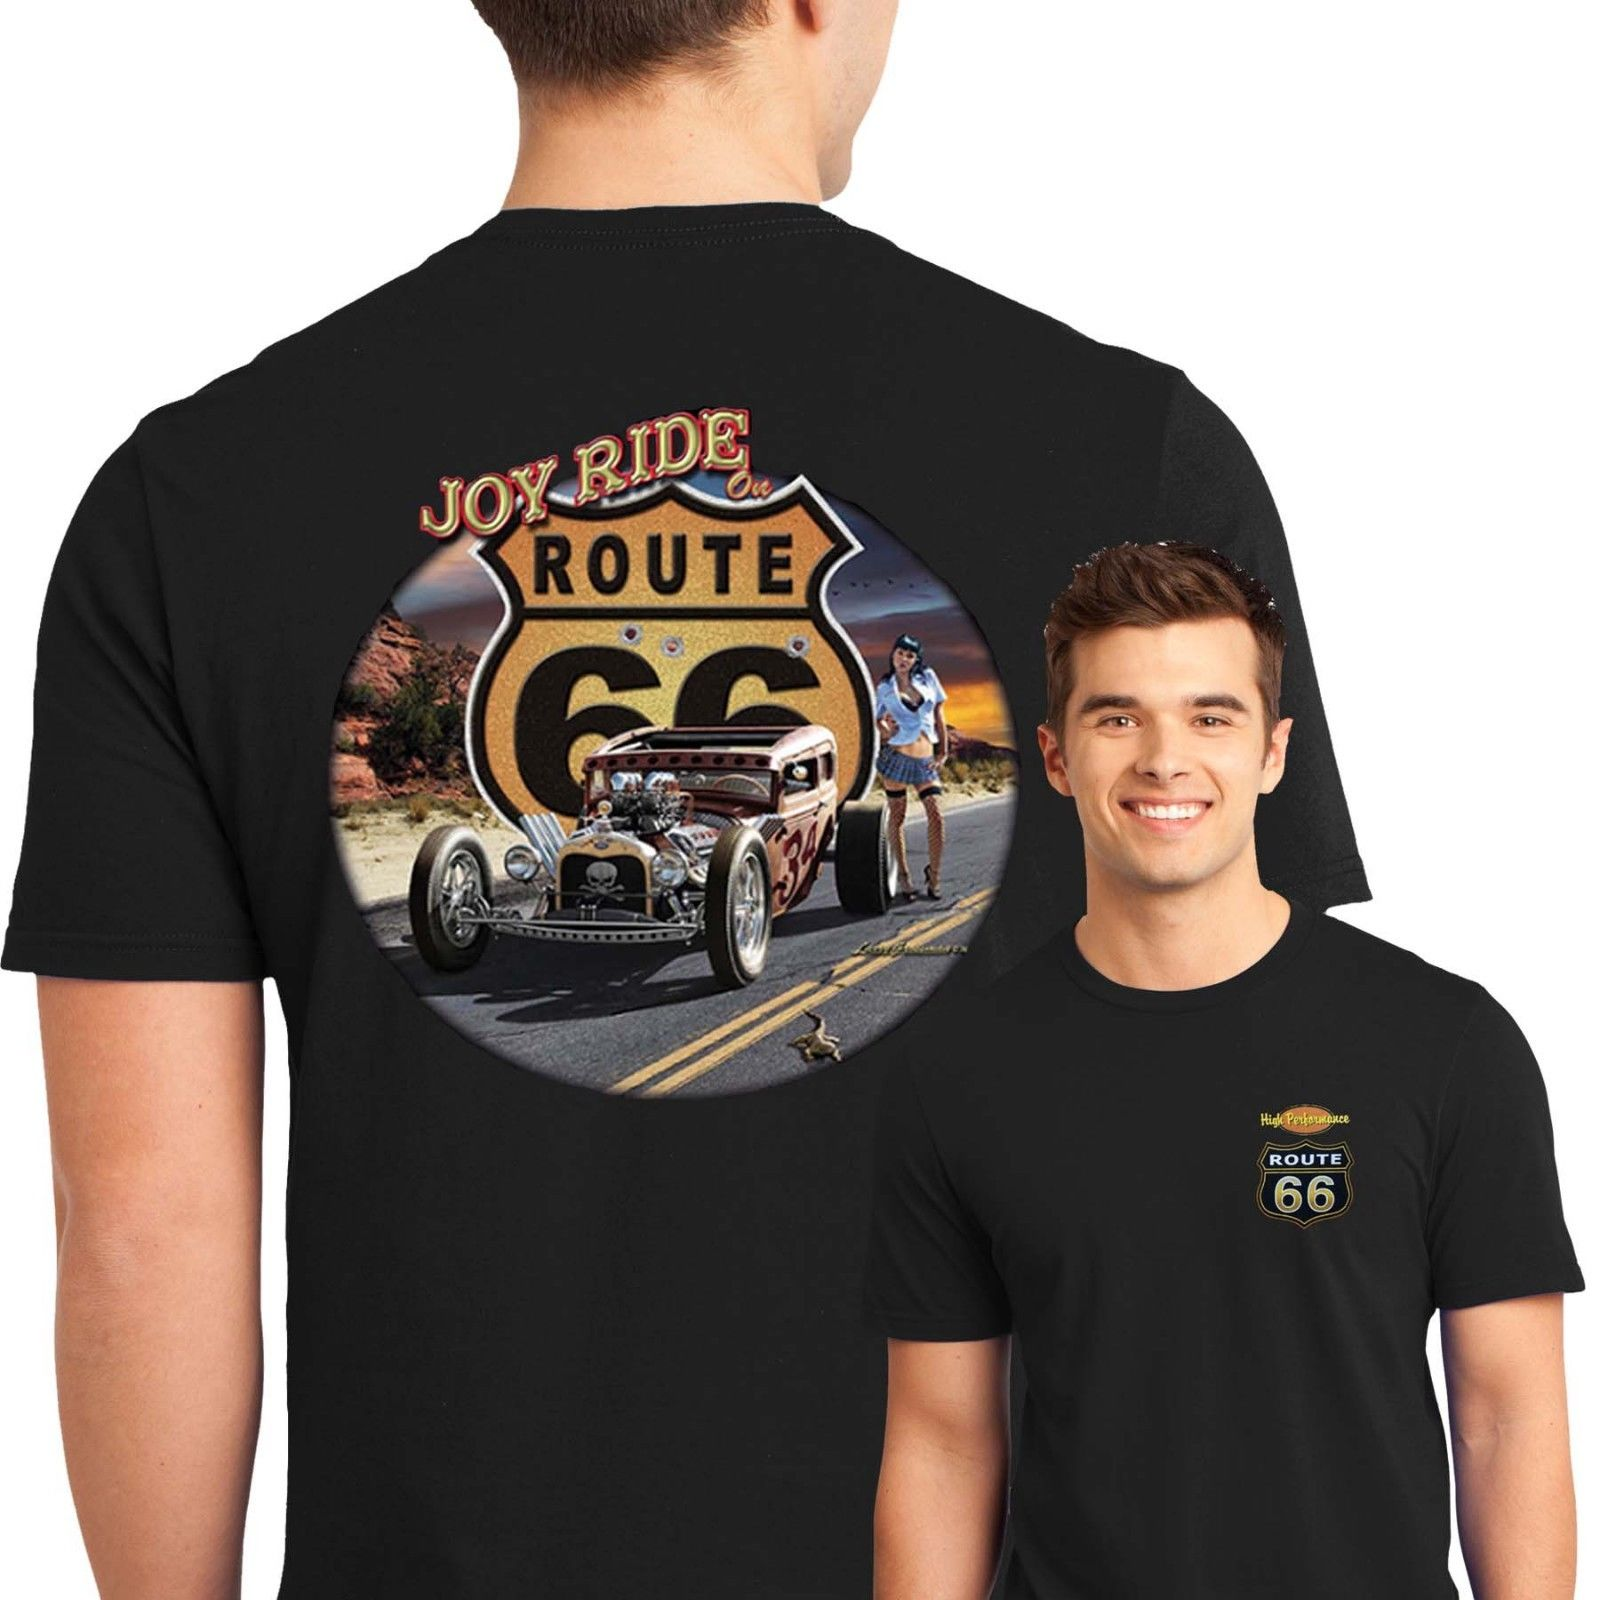 2019 Fashion Free shipping <font><b>Route</b></font> <font><b>66</b></font> <font><b>T</b></font> <font><b>Shirts</b></font> Rat Rod Pinup Girls Joy Ride USA Small to 2XL Free Shipping Tee <font><b>shirt</b></font> image